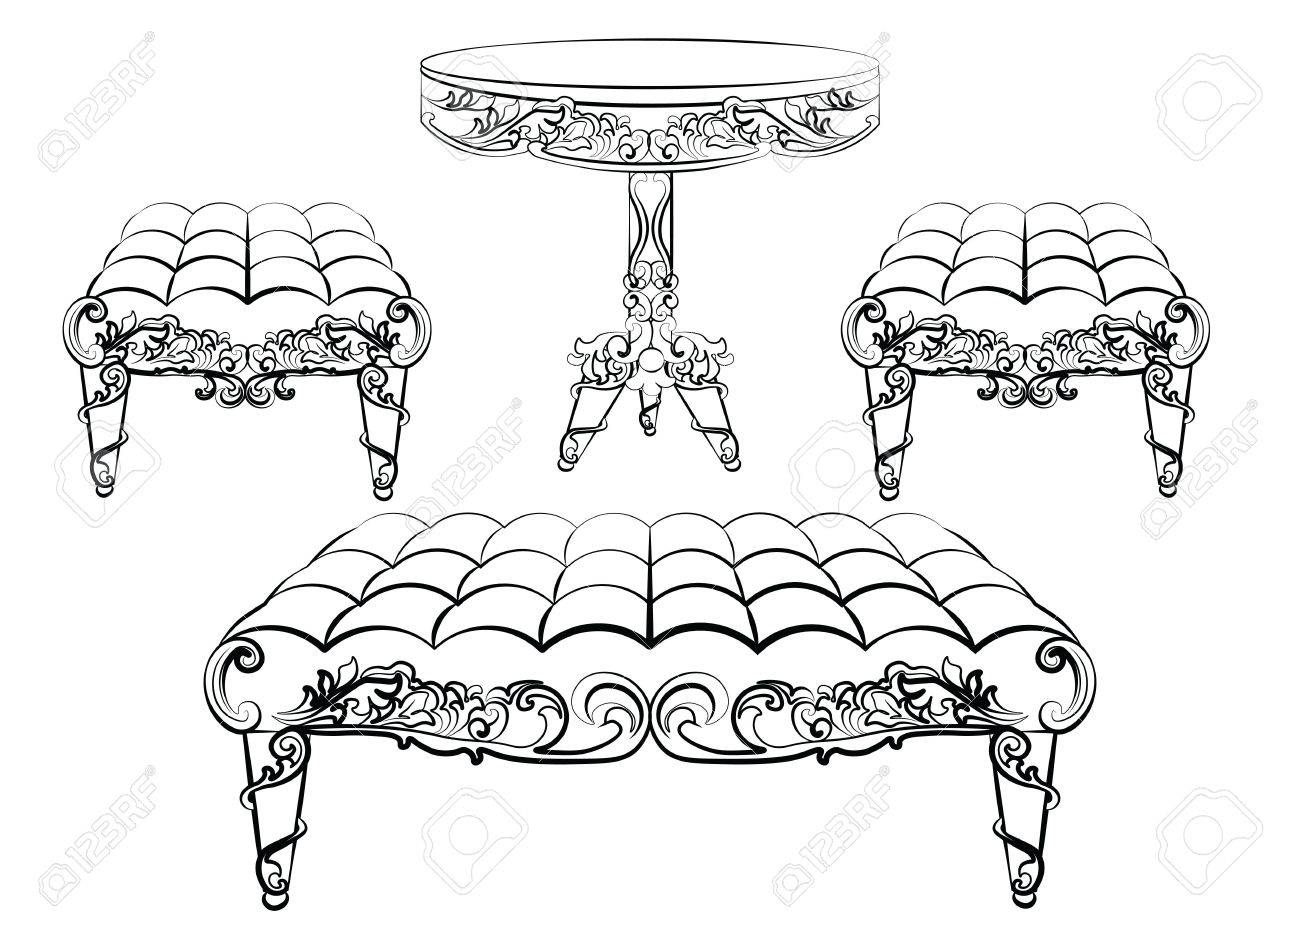 Rococo furniture sketch - Furniture In Classic Rococo Style Ornament Vector Sketch Stock Vector 58421981